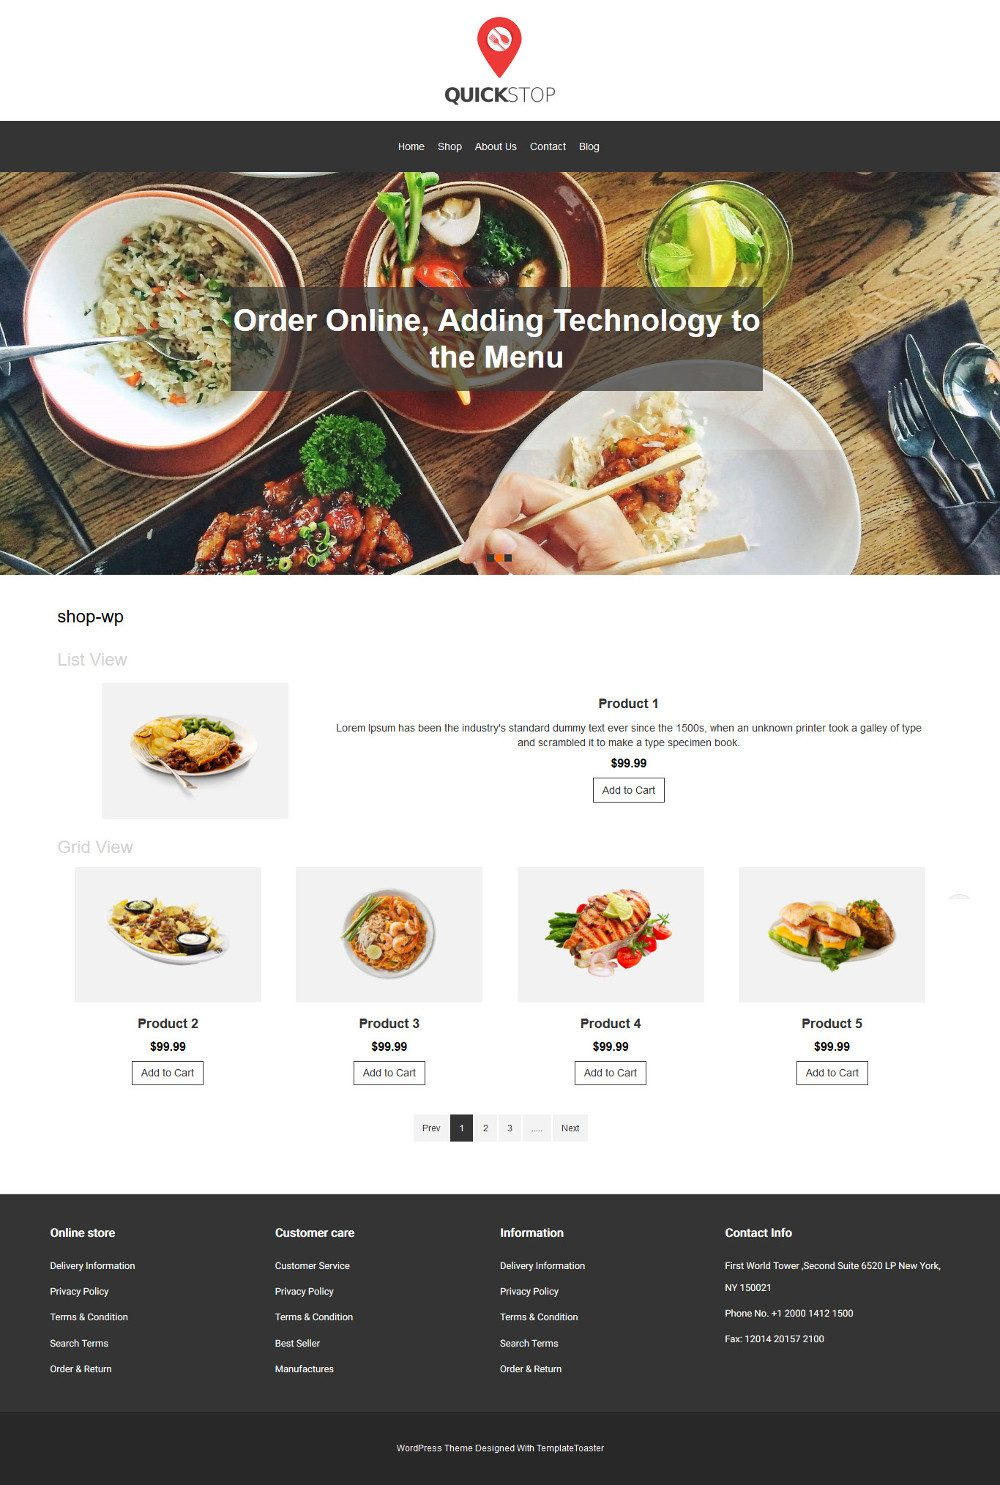 Quick Stop Online Restaurant WooCommerce Theme